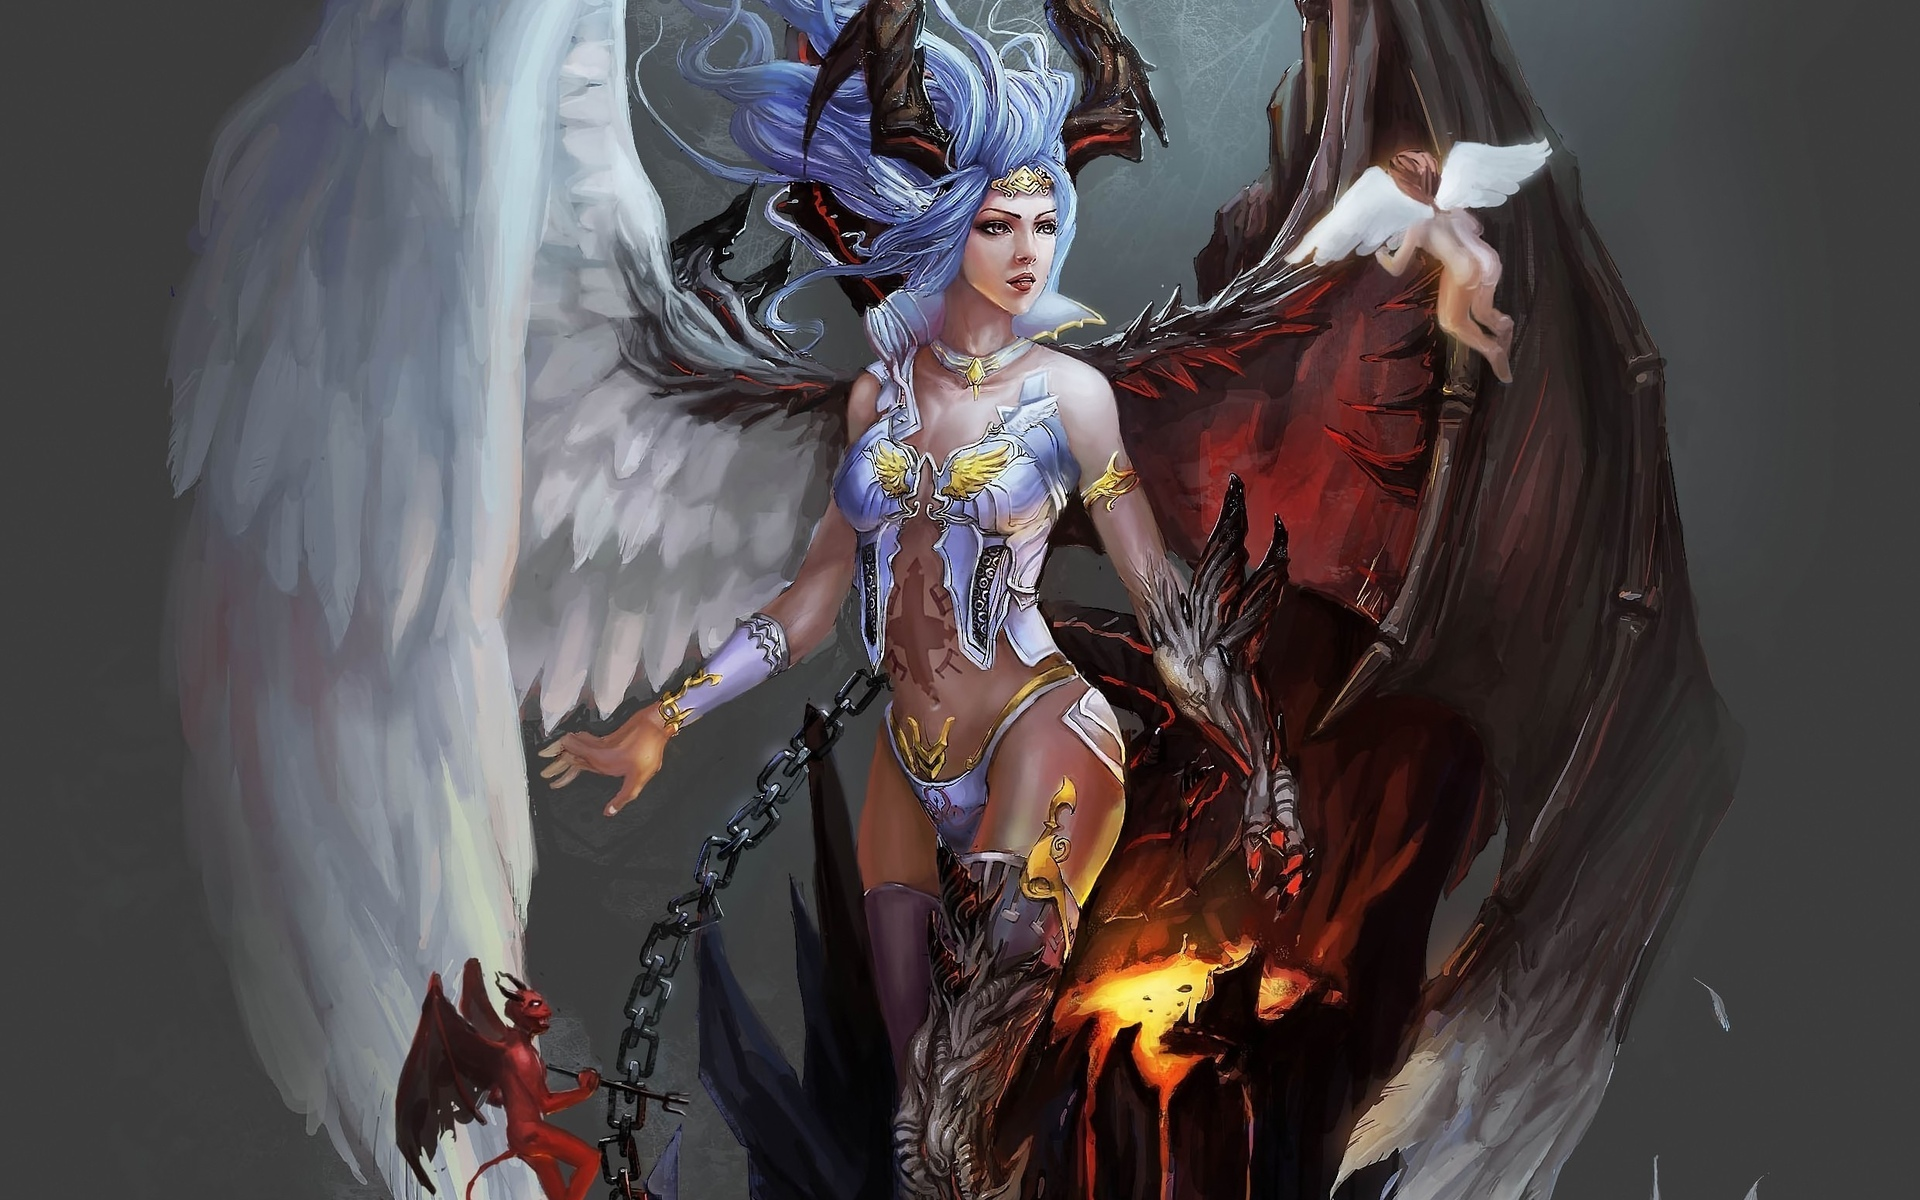 Fantasy Demon Angel Wings Chains Fire Magic Good Evil God Goddess Art 1920x1200